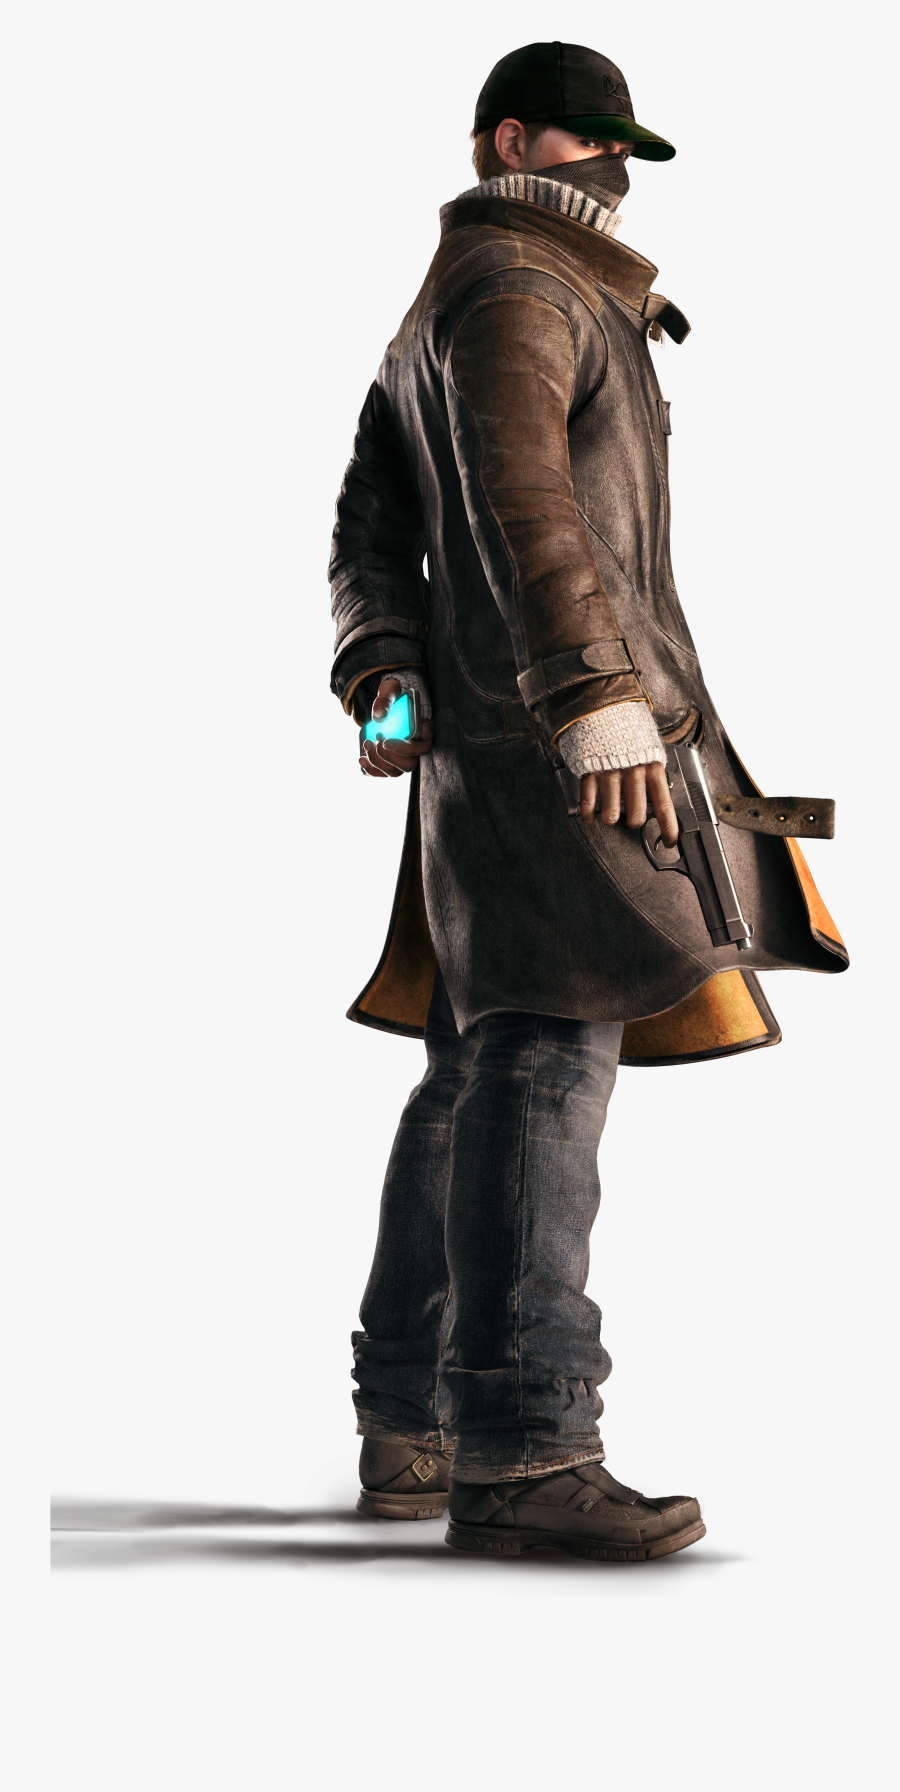 Watch Dogs Aiden Pearce, Transparent Clipart